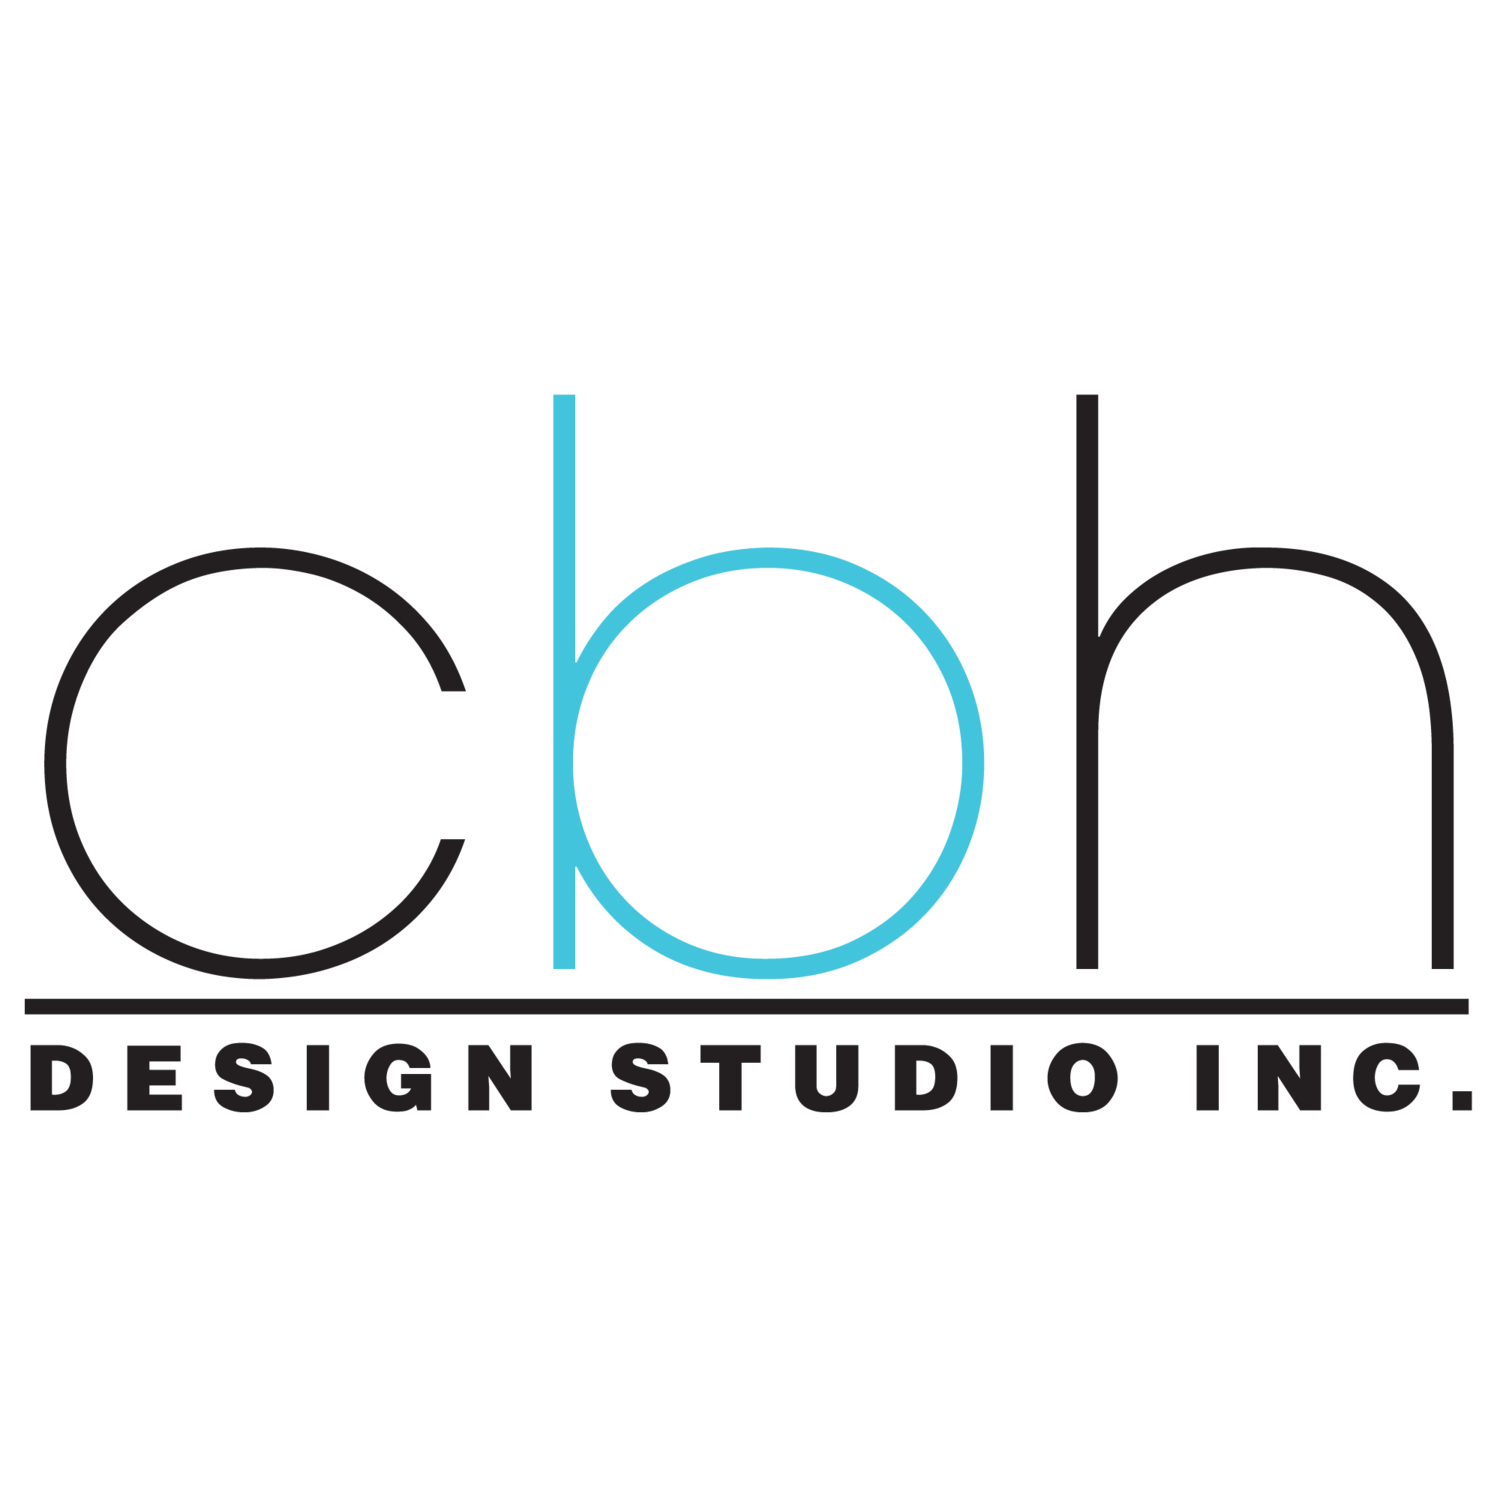 CBH DESIGN STUDIO INC.